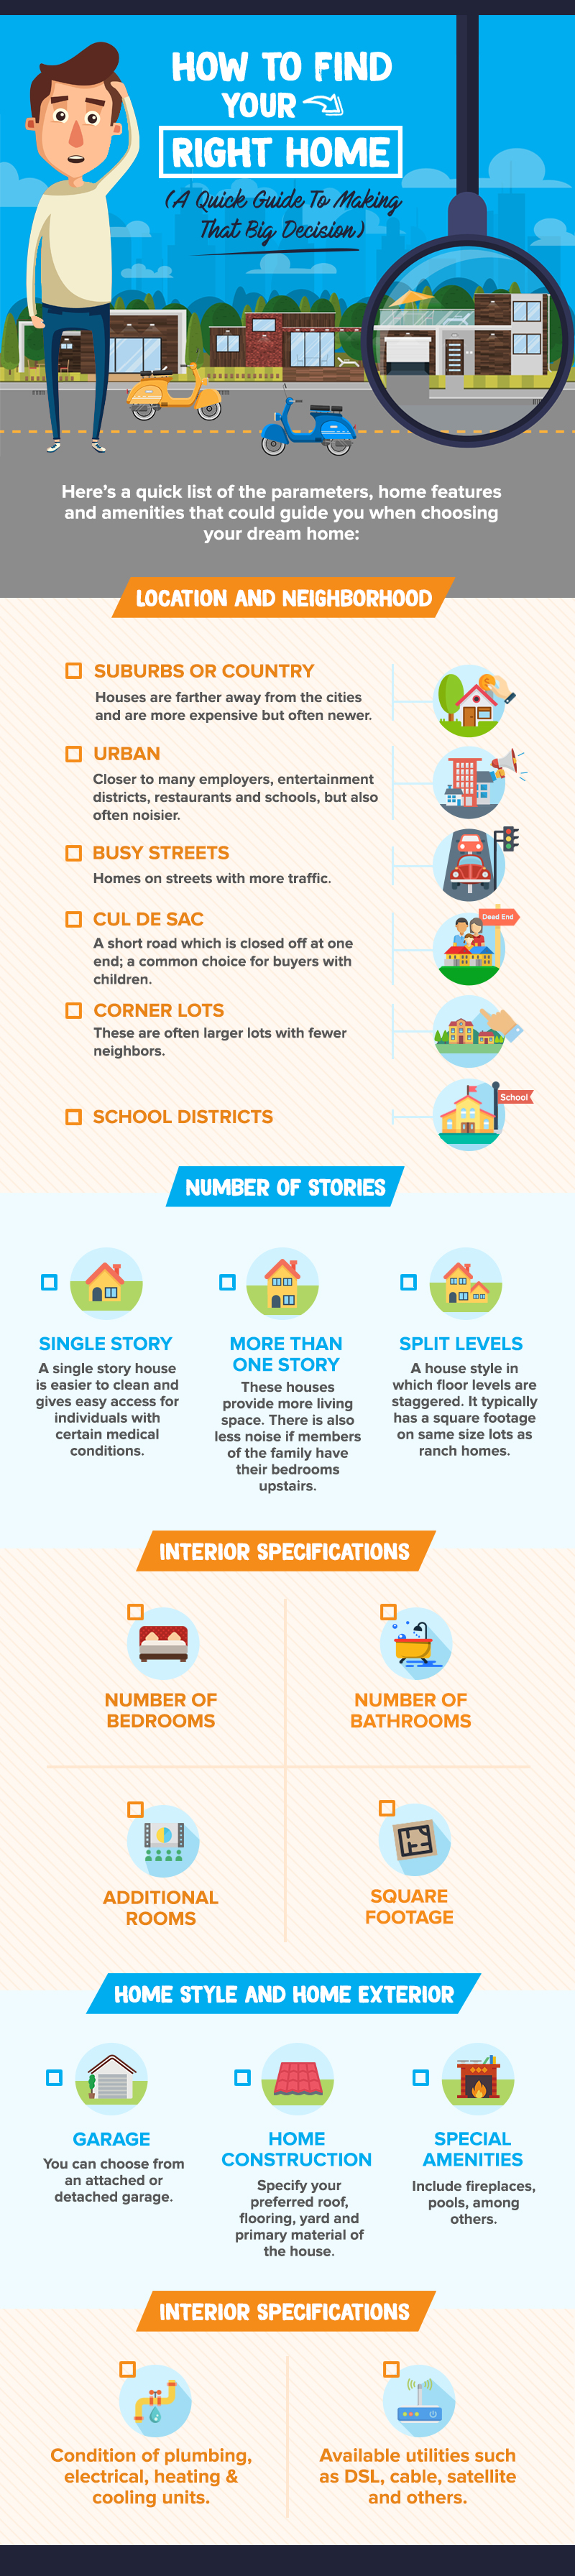 How To Find Your Right Home - updated.jpg